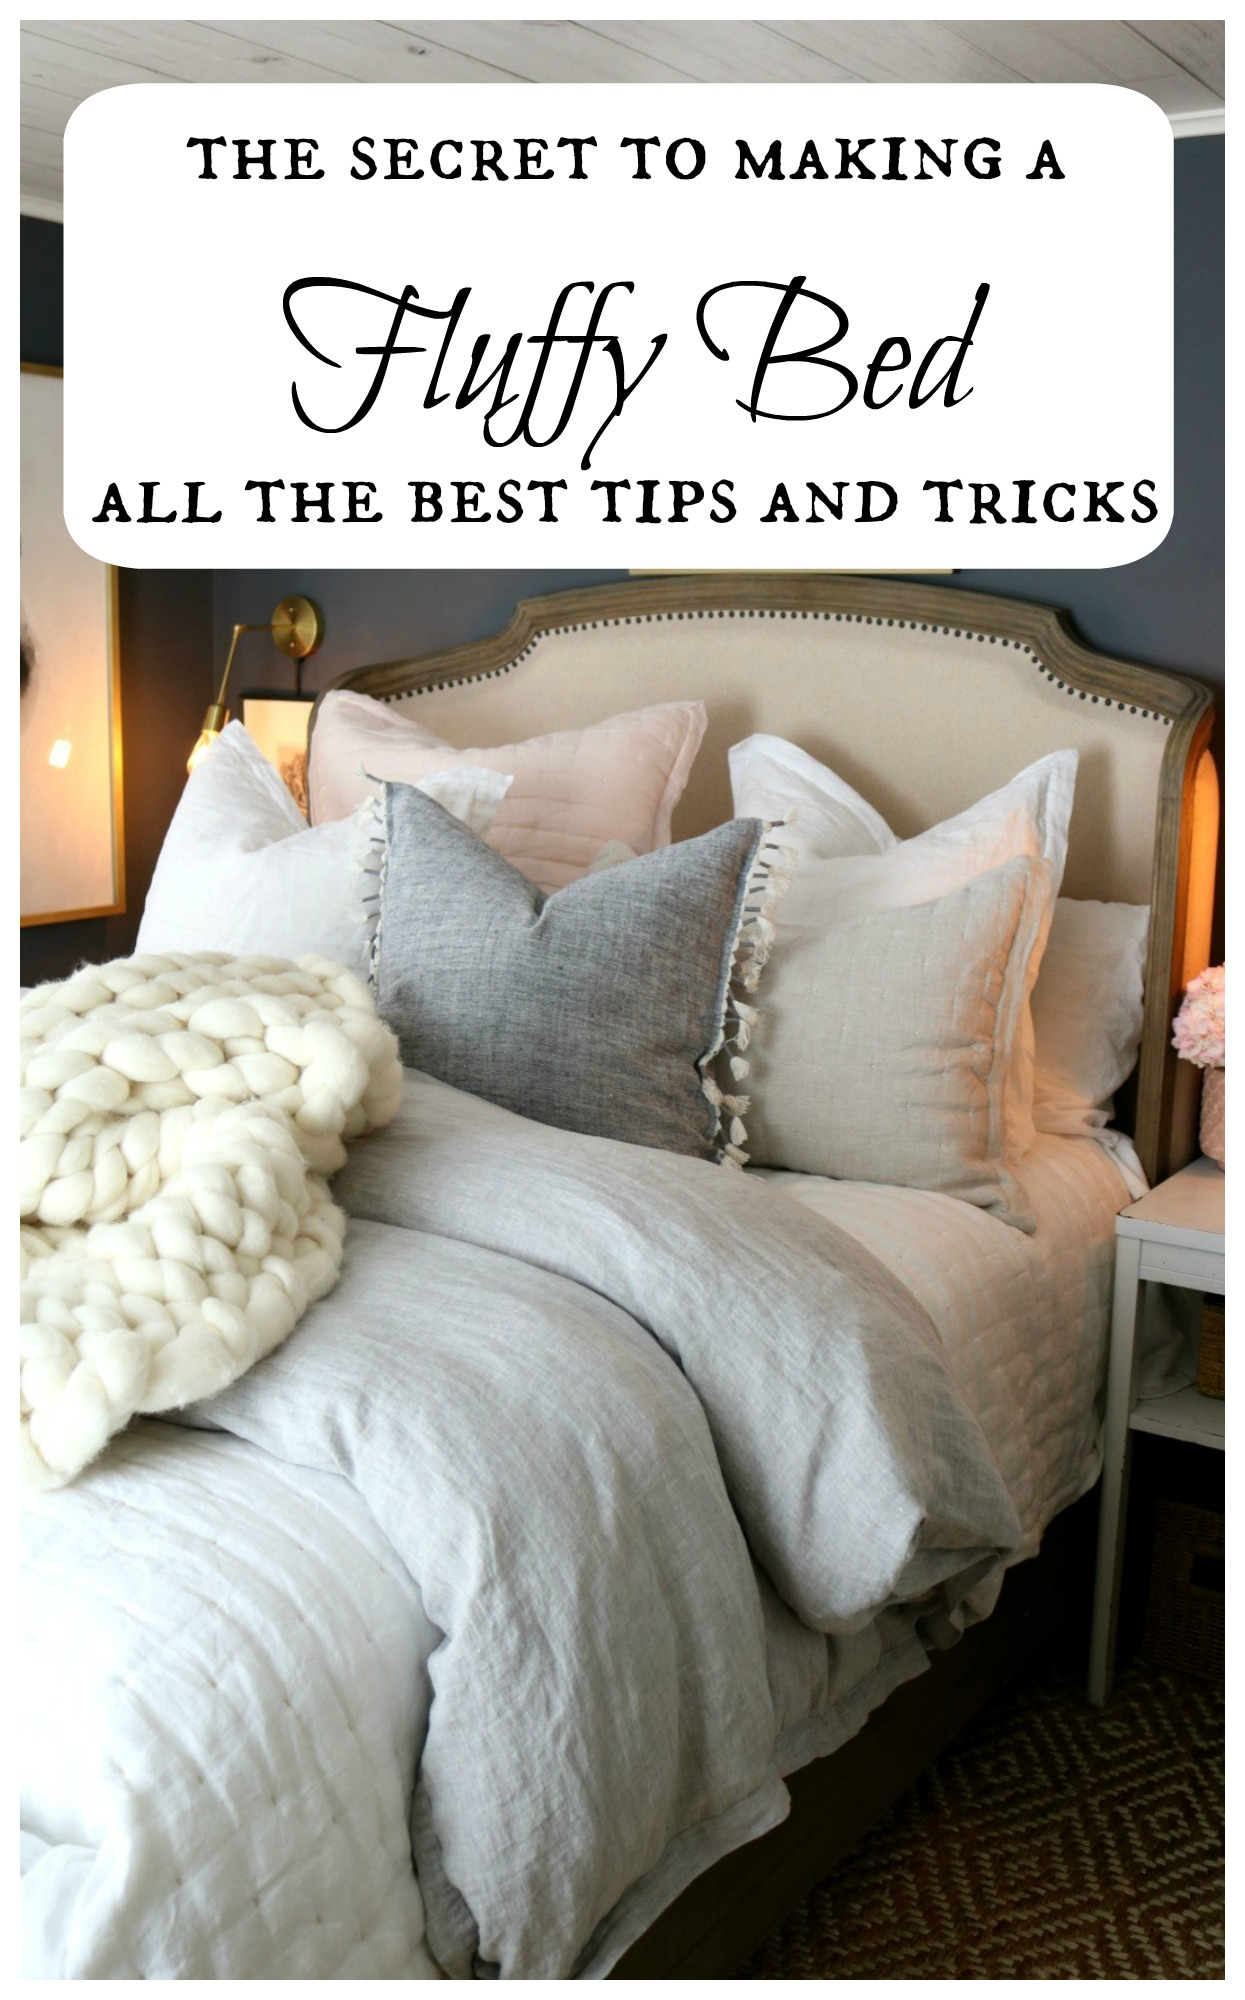 The secret to making a fluffy bed- All the best tips and tricks!